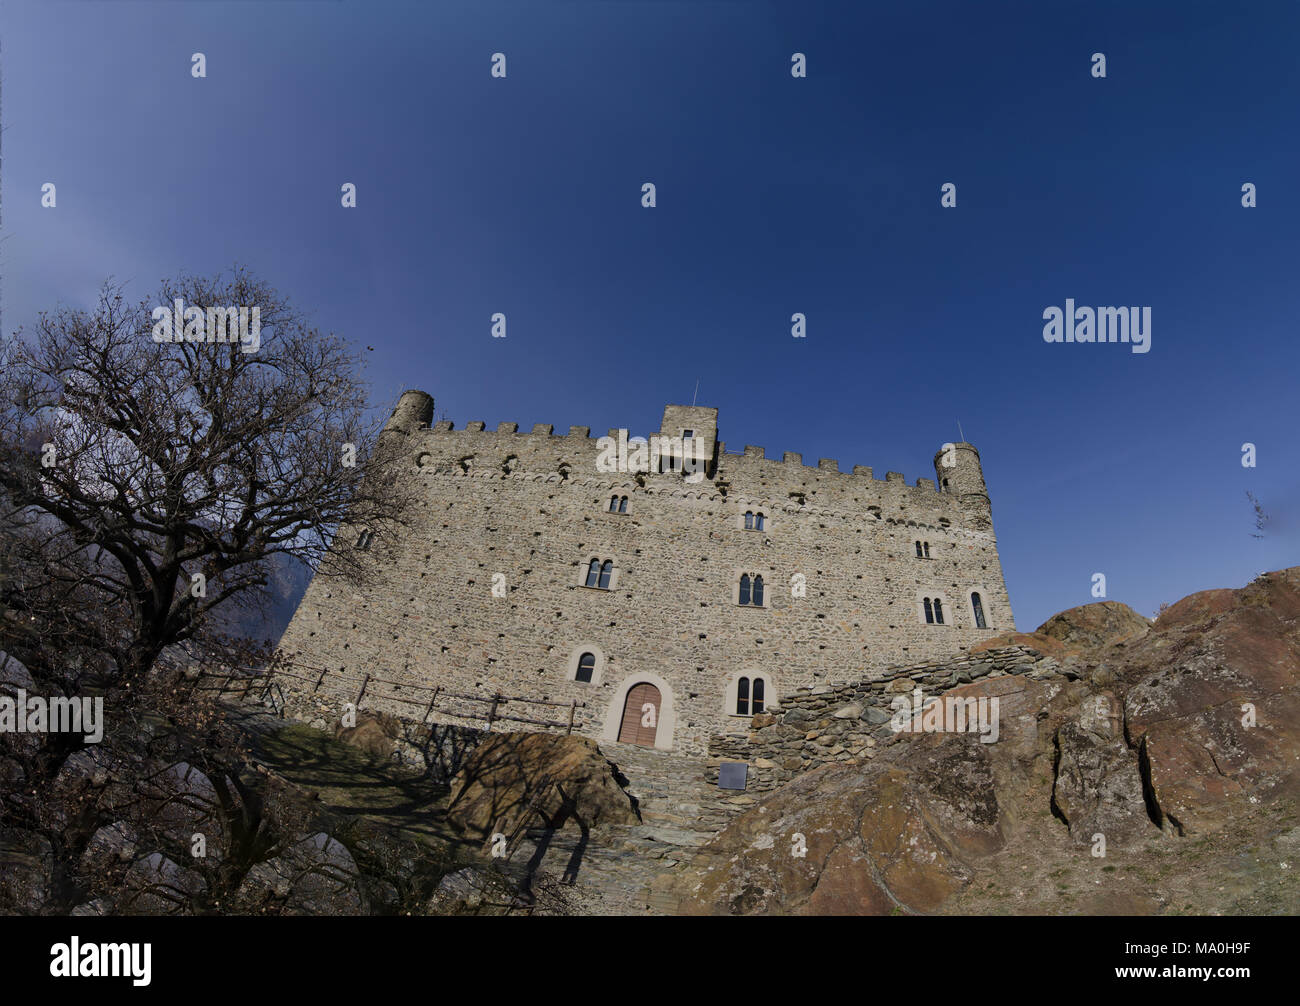 Ussel fraction of Chatillon, Valle d'Aosta, Italy 11 February 2018. Large format photo of the castle facade, entrance side. - Stock Image